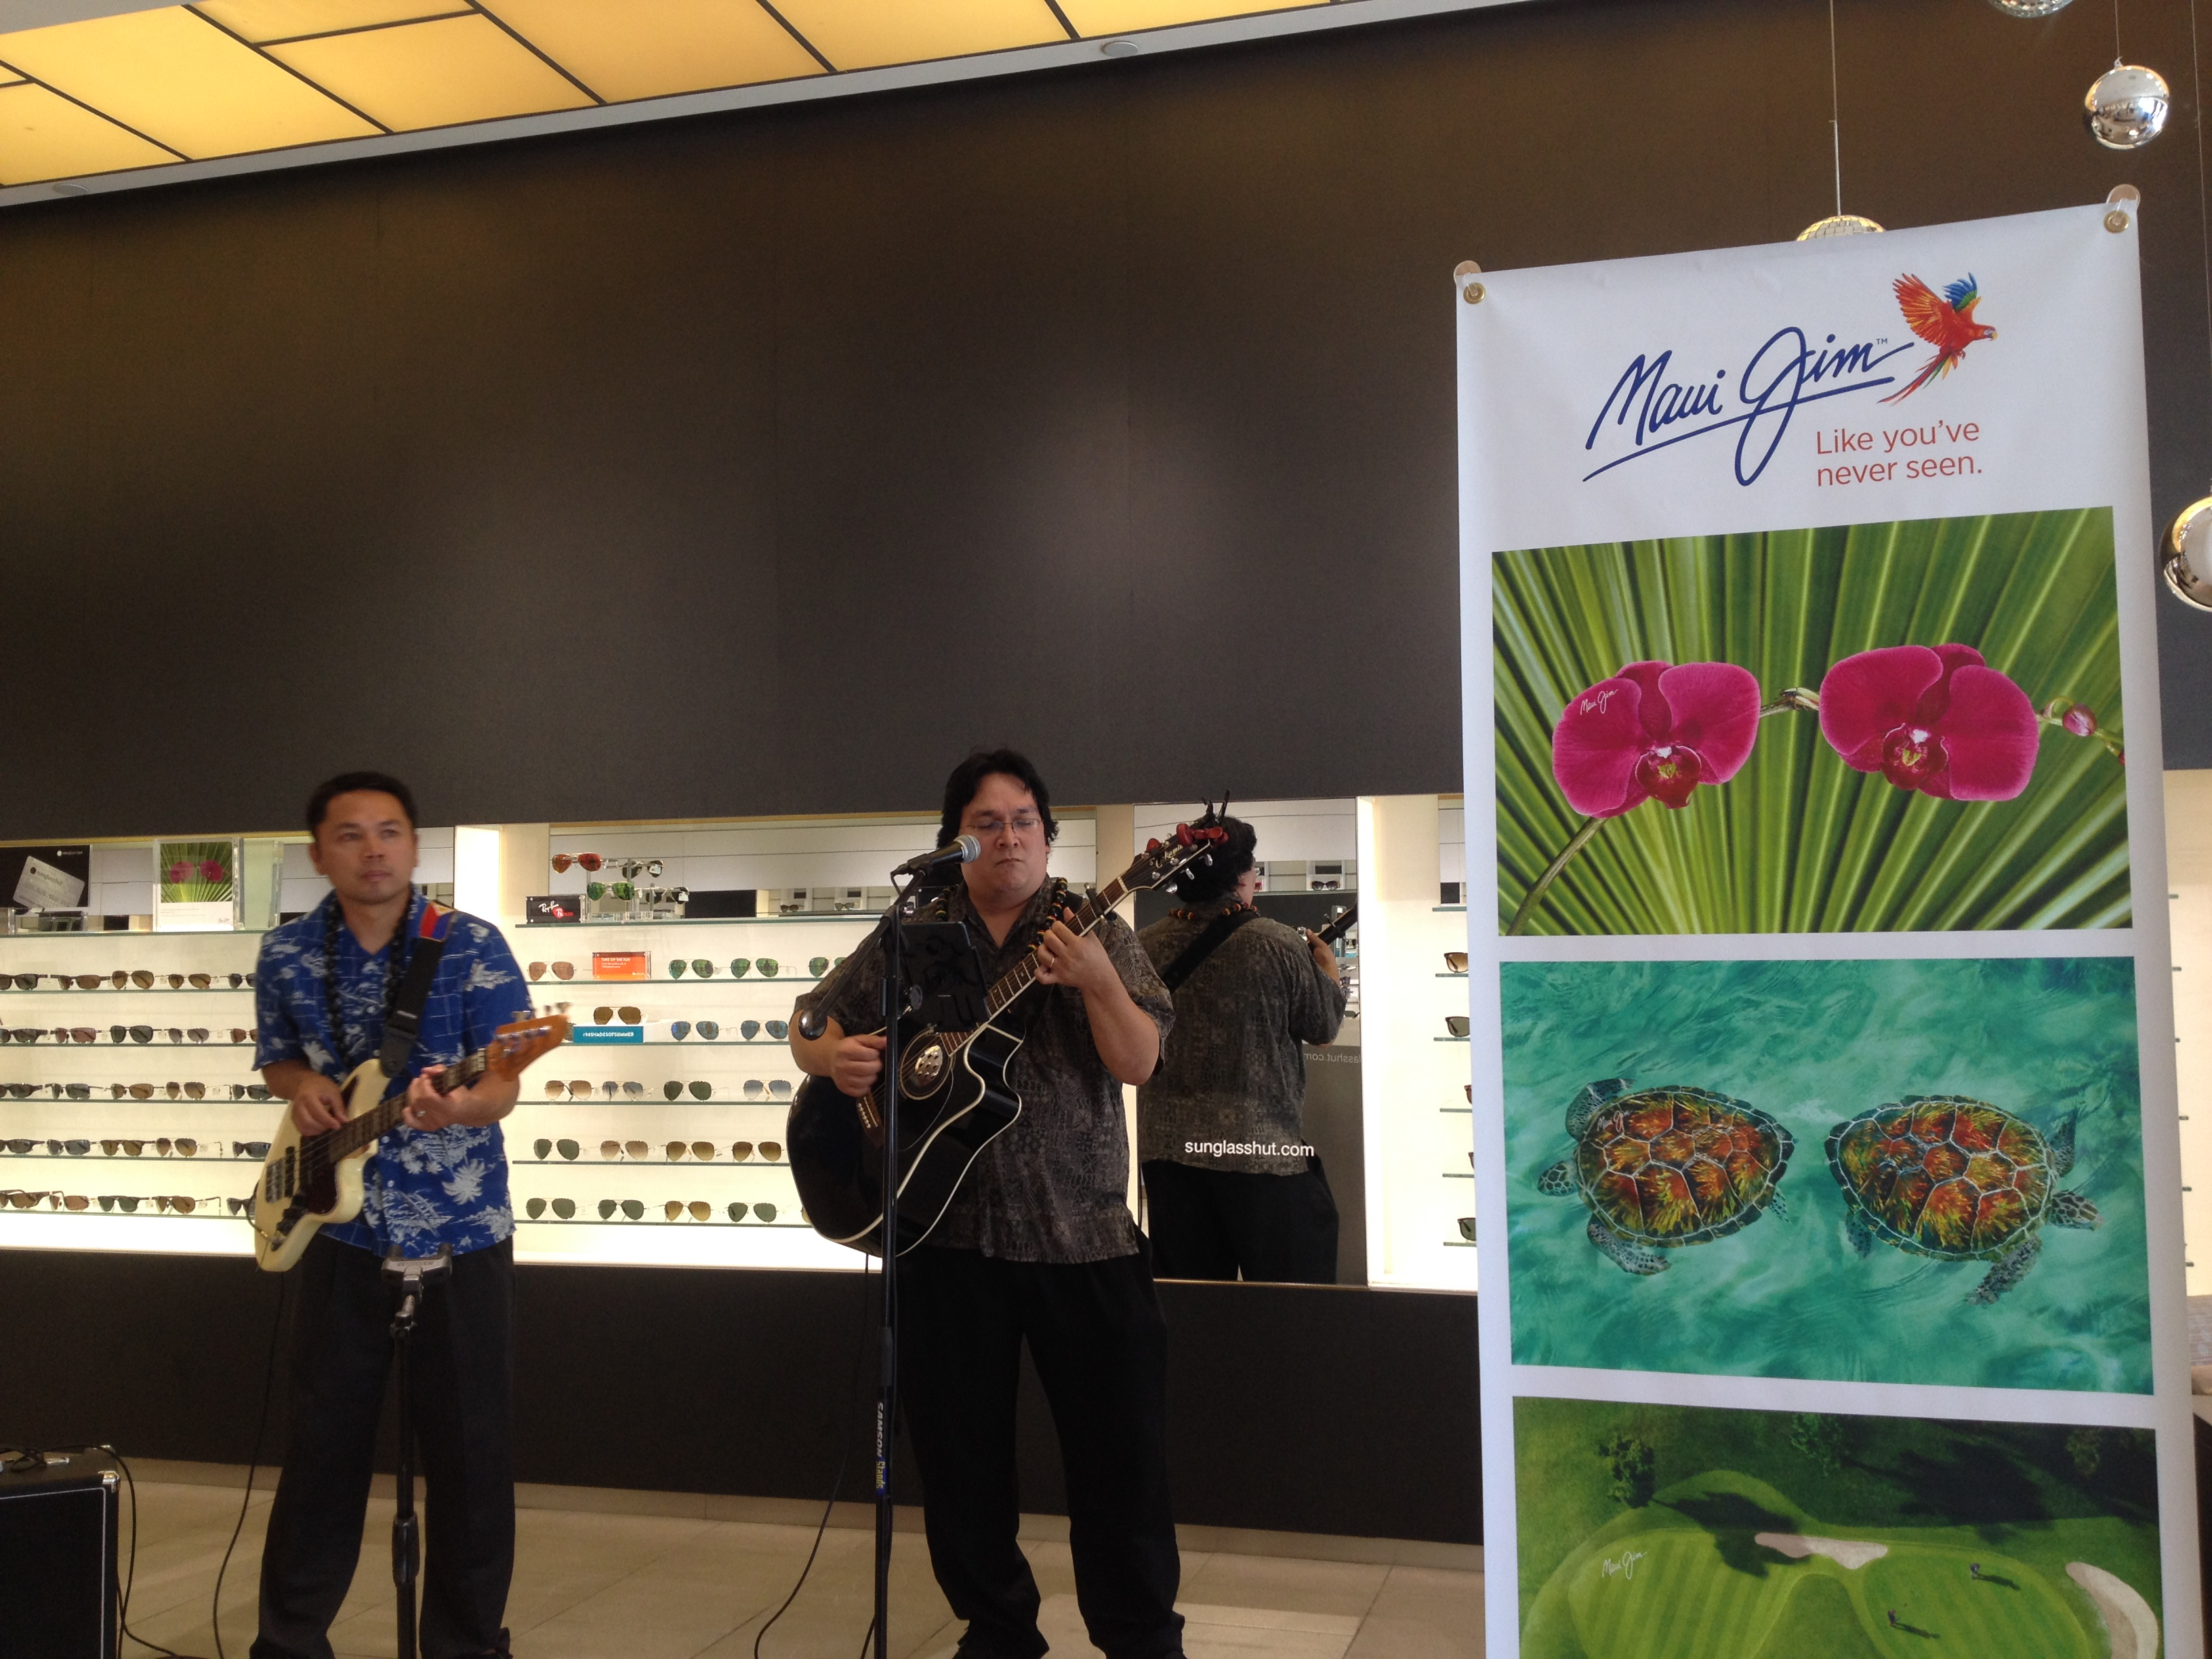 Maui Jim corporate event